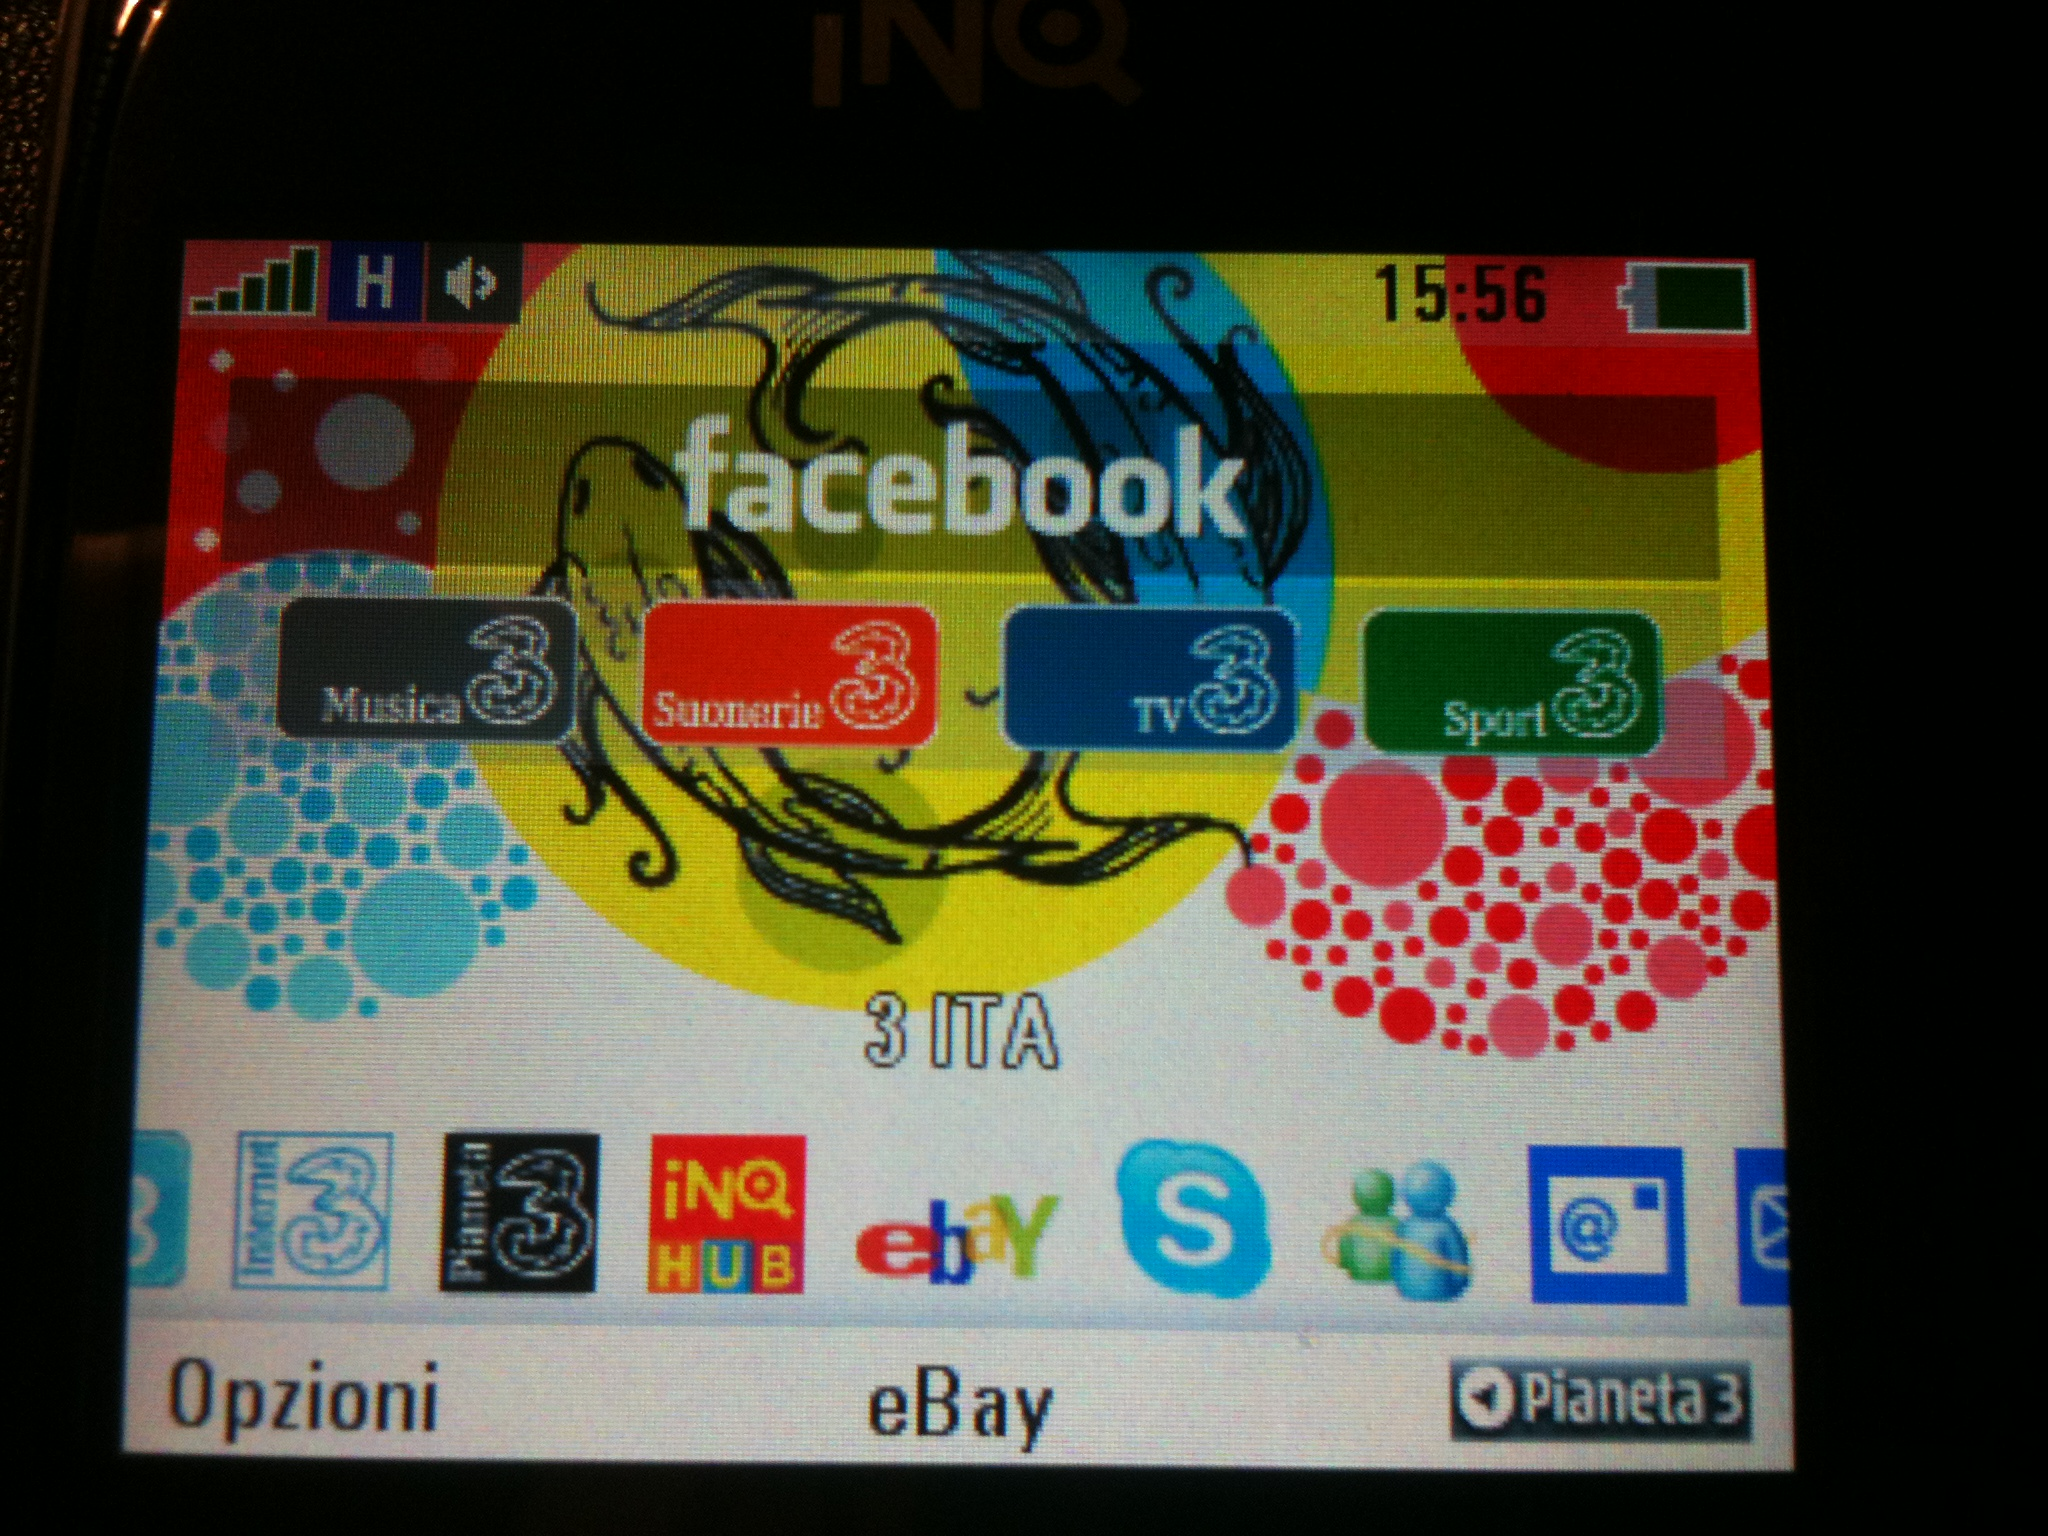 Display Inq Chat 3G